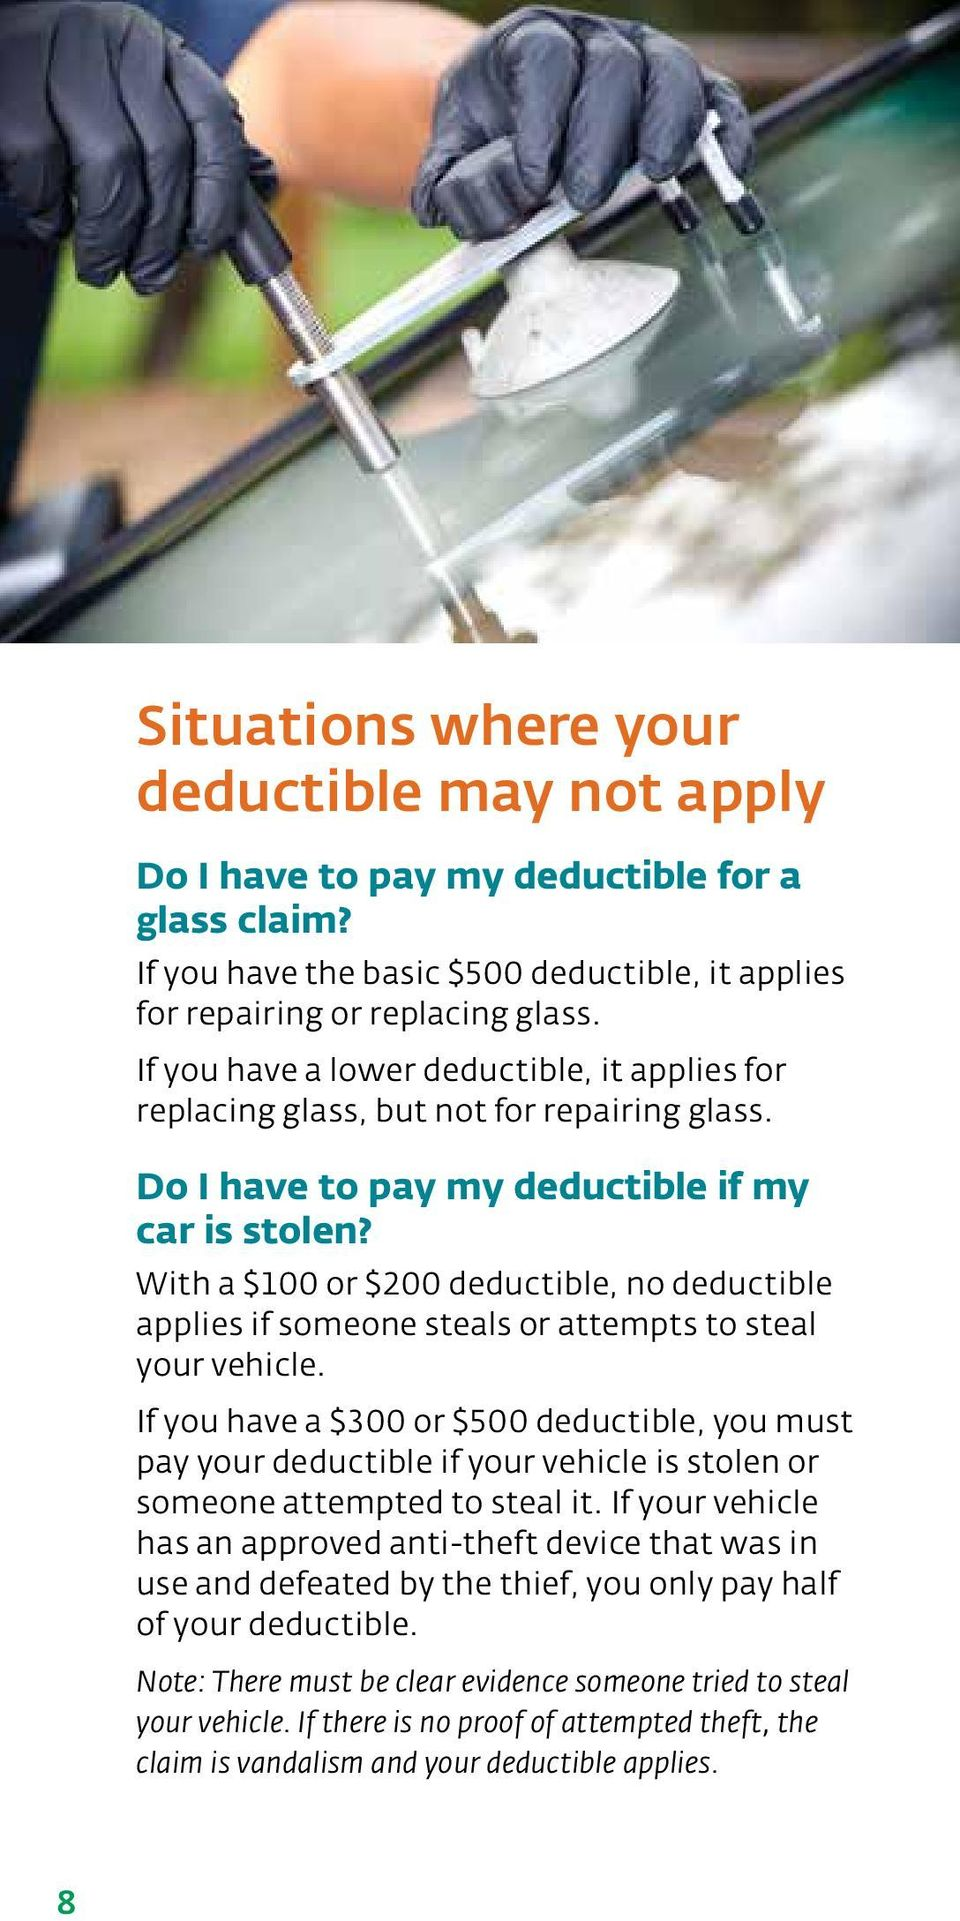 With a $100 or $200 deductible, no deductible applies if someone steals or attempts to steal your vehicle.